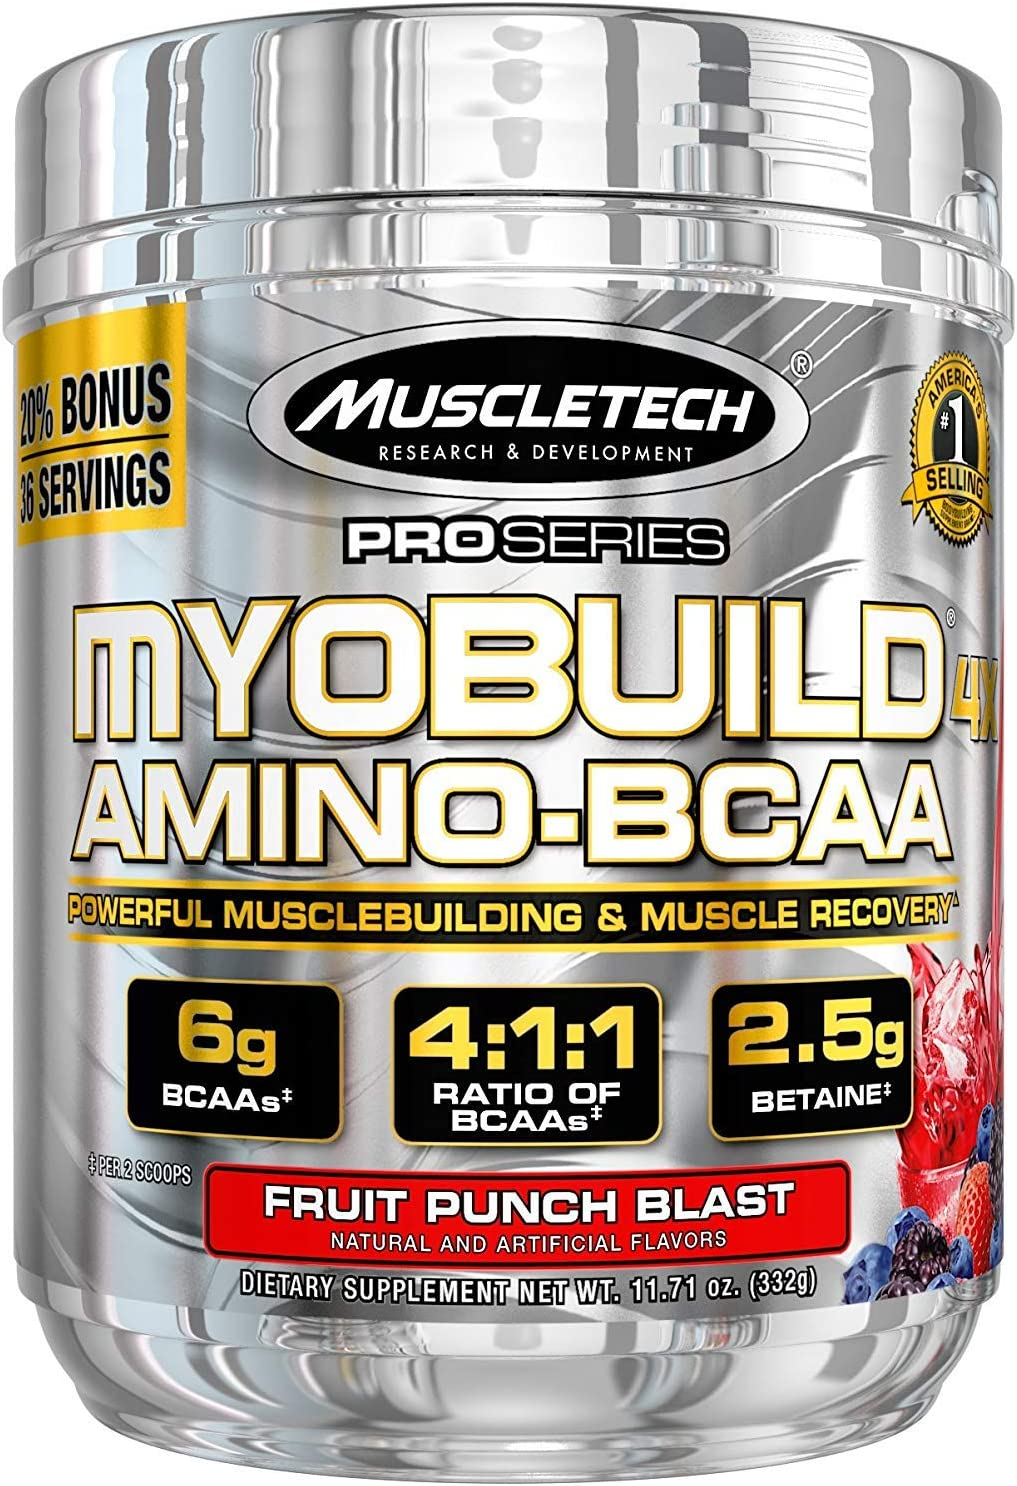 MuscleTech Myobuild BCAA Amino Acids, Muscle Building and Recovery Formula